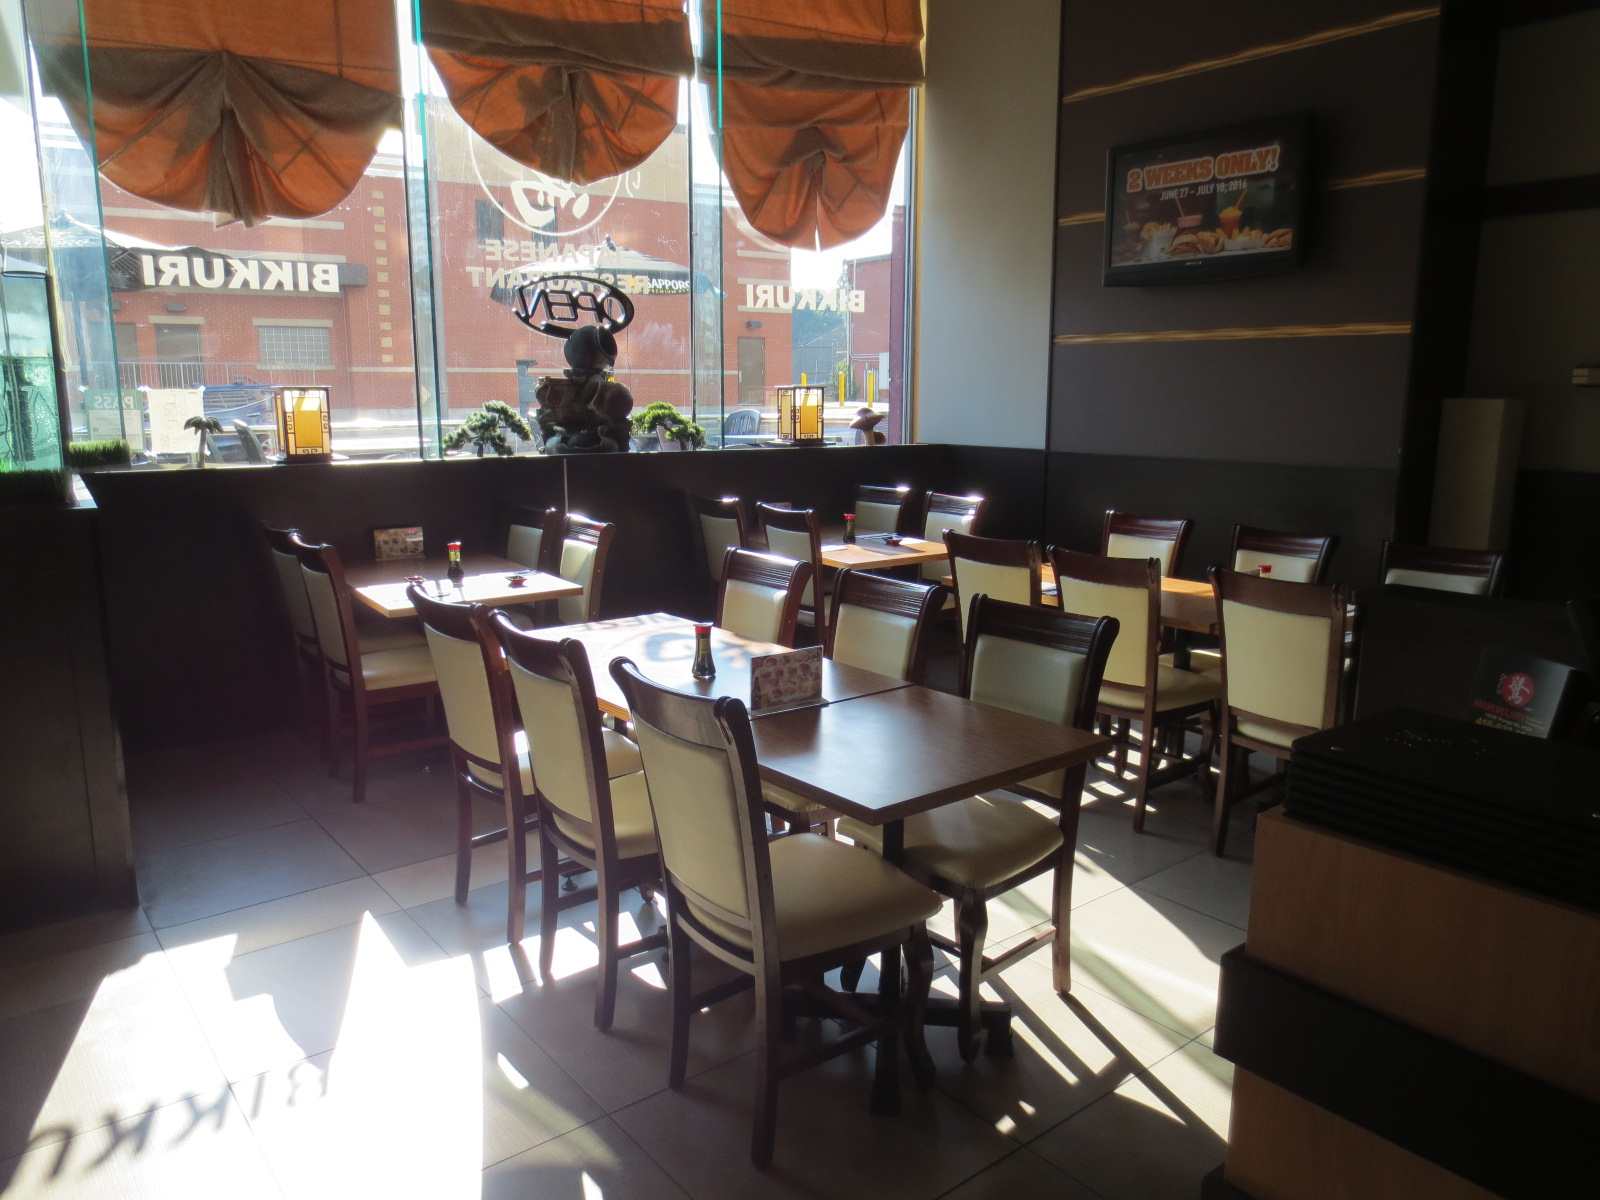 Picture of main dining area in front of restaurant. Standard height tables shown.